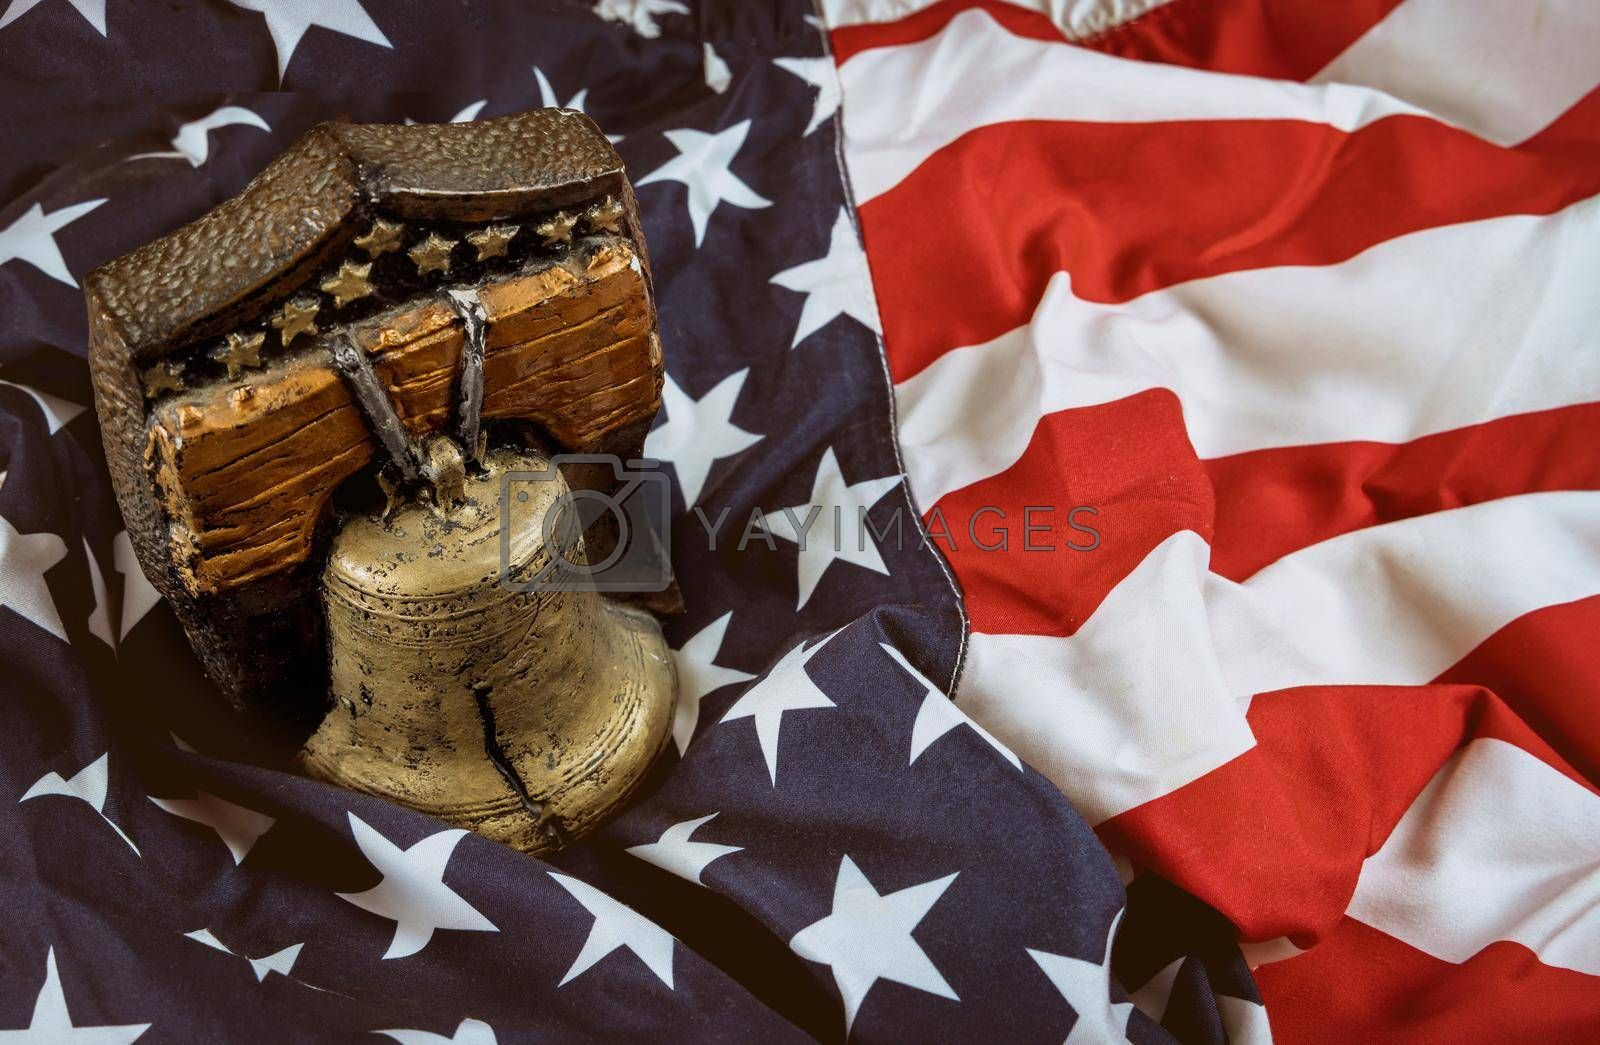 Remember bell with American flag Memorial day celebration remember those who served